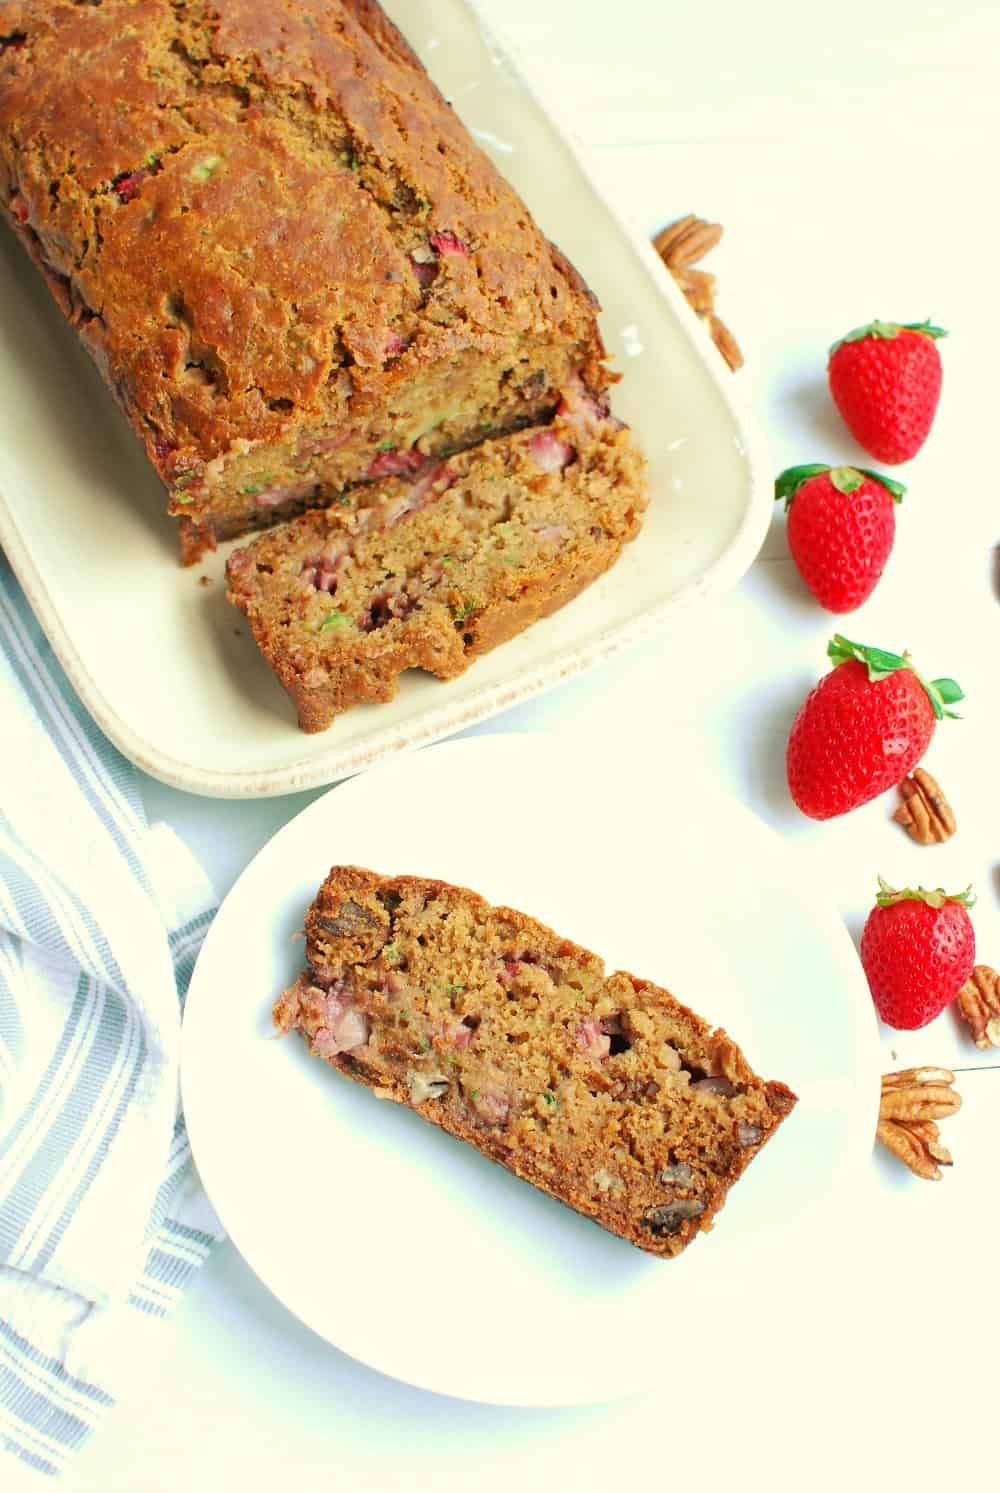 A slice of strawberry zucchini bread on a white plate next to the loaf and some fresh strawberries.